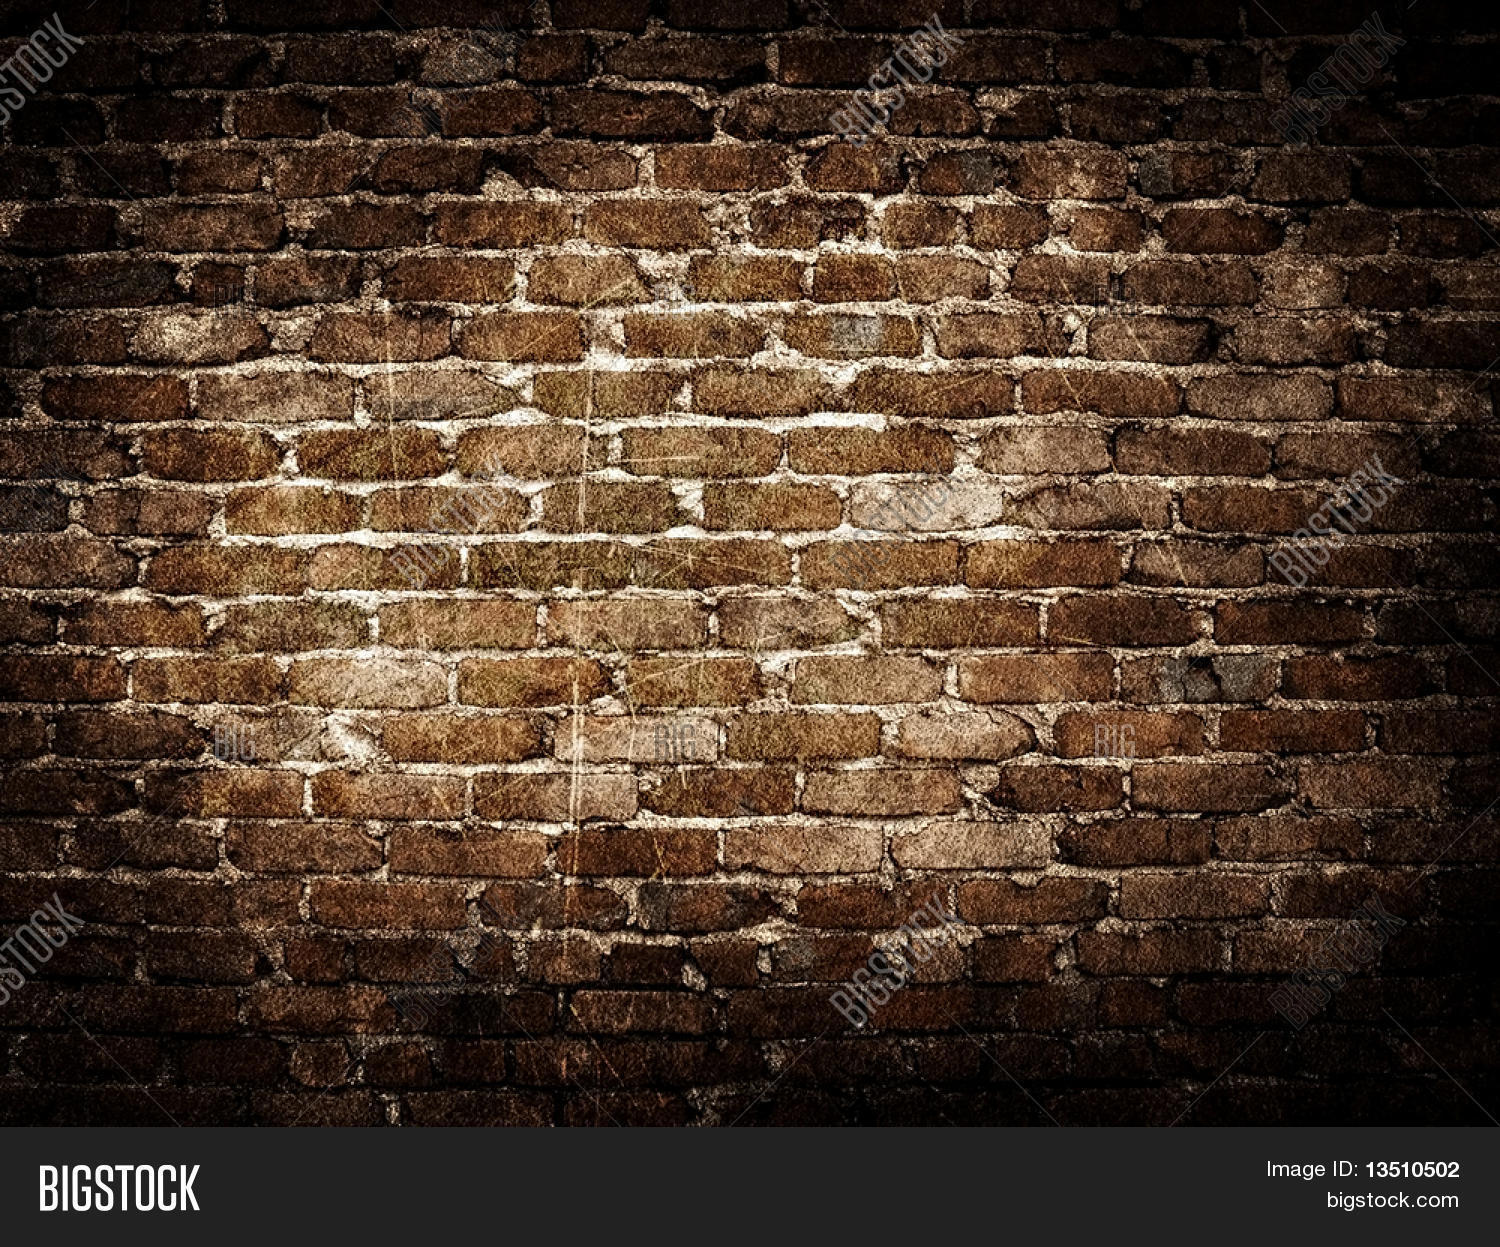 Grunge Brick Wall Background Image Photo Bigstock